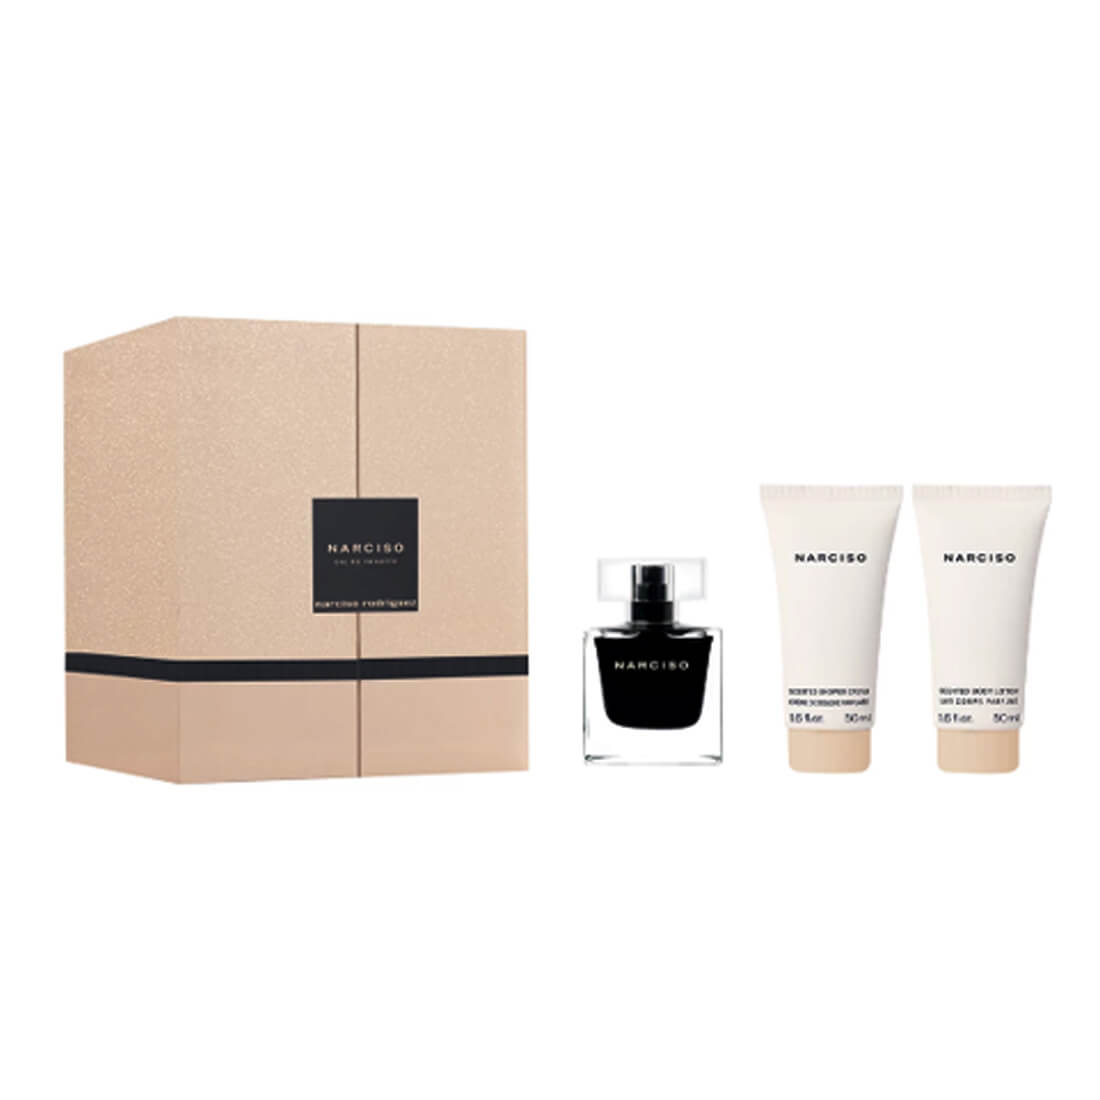 Narciso Rodriguez Narciso Gift Set Pack Of 3